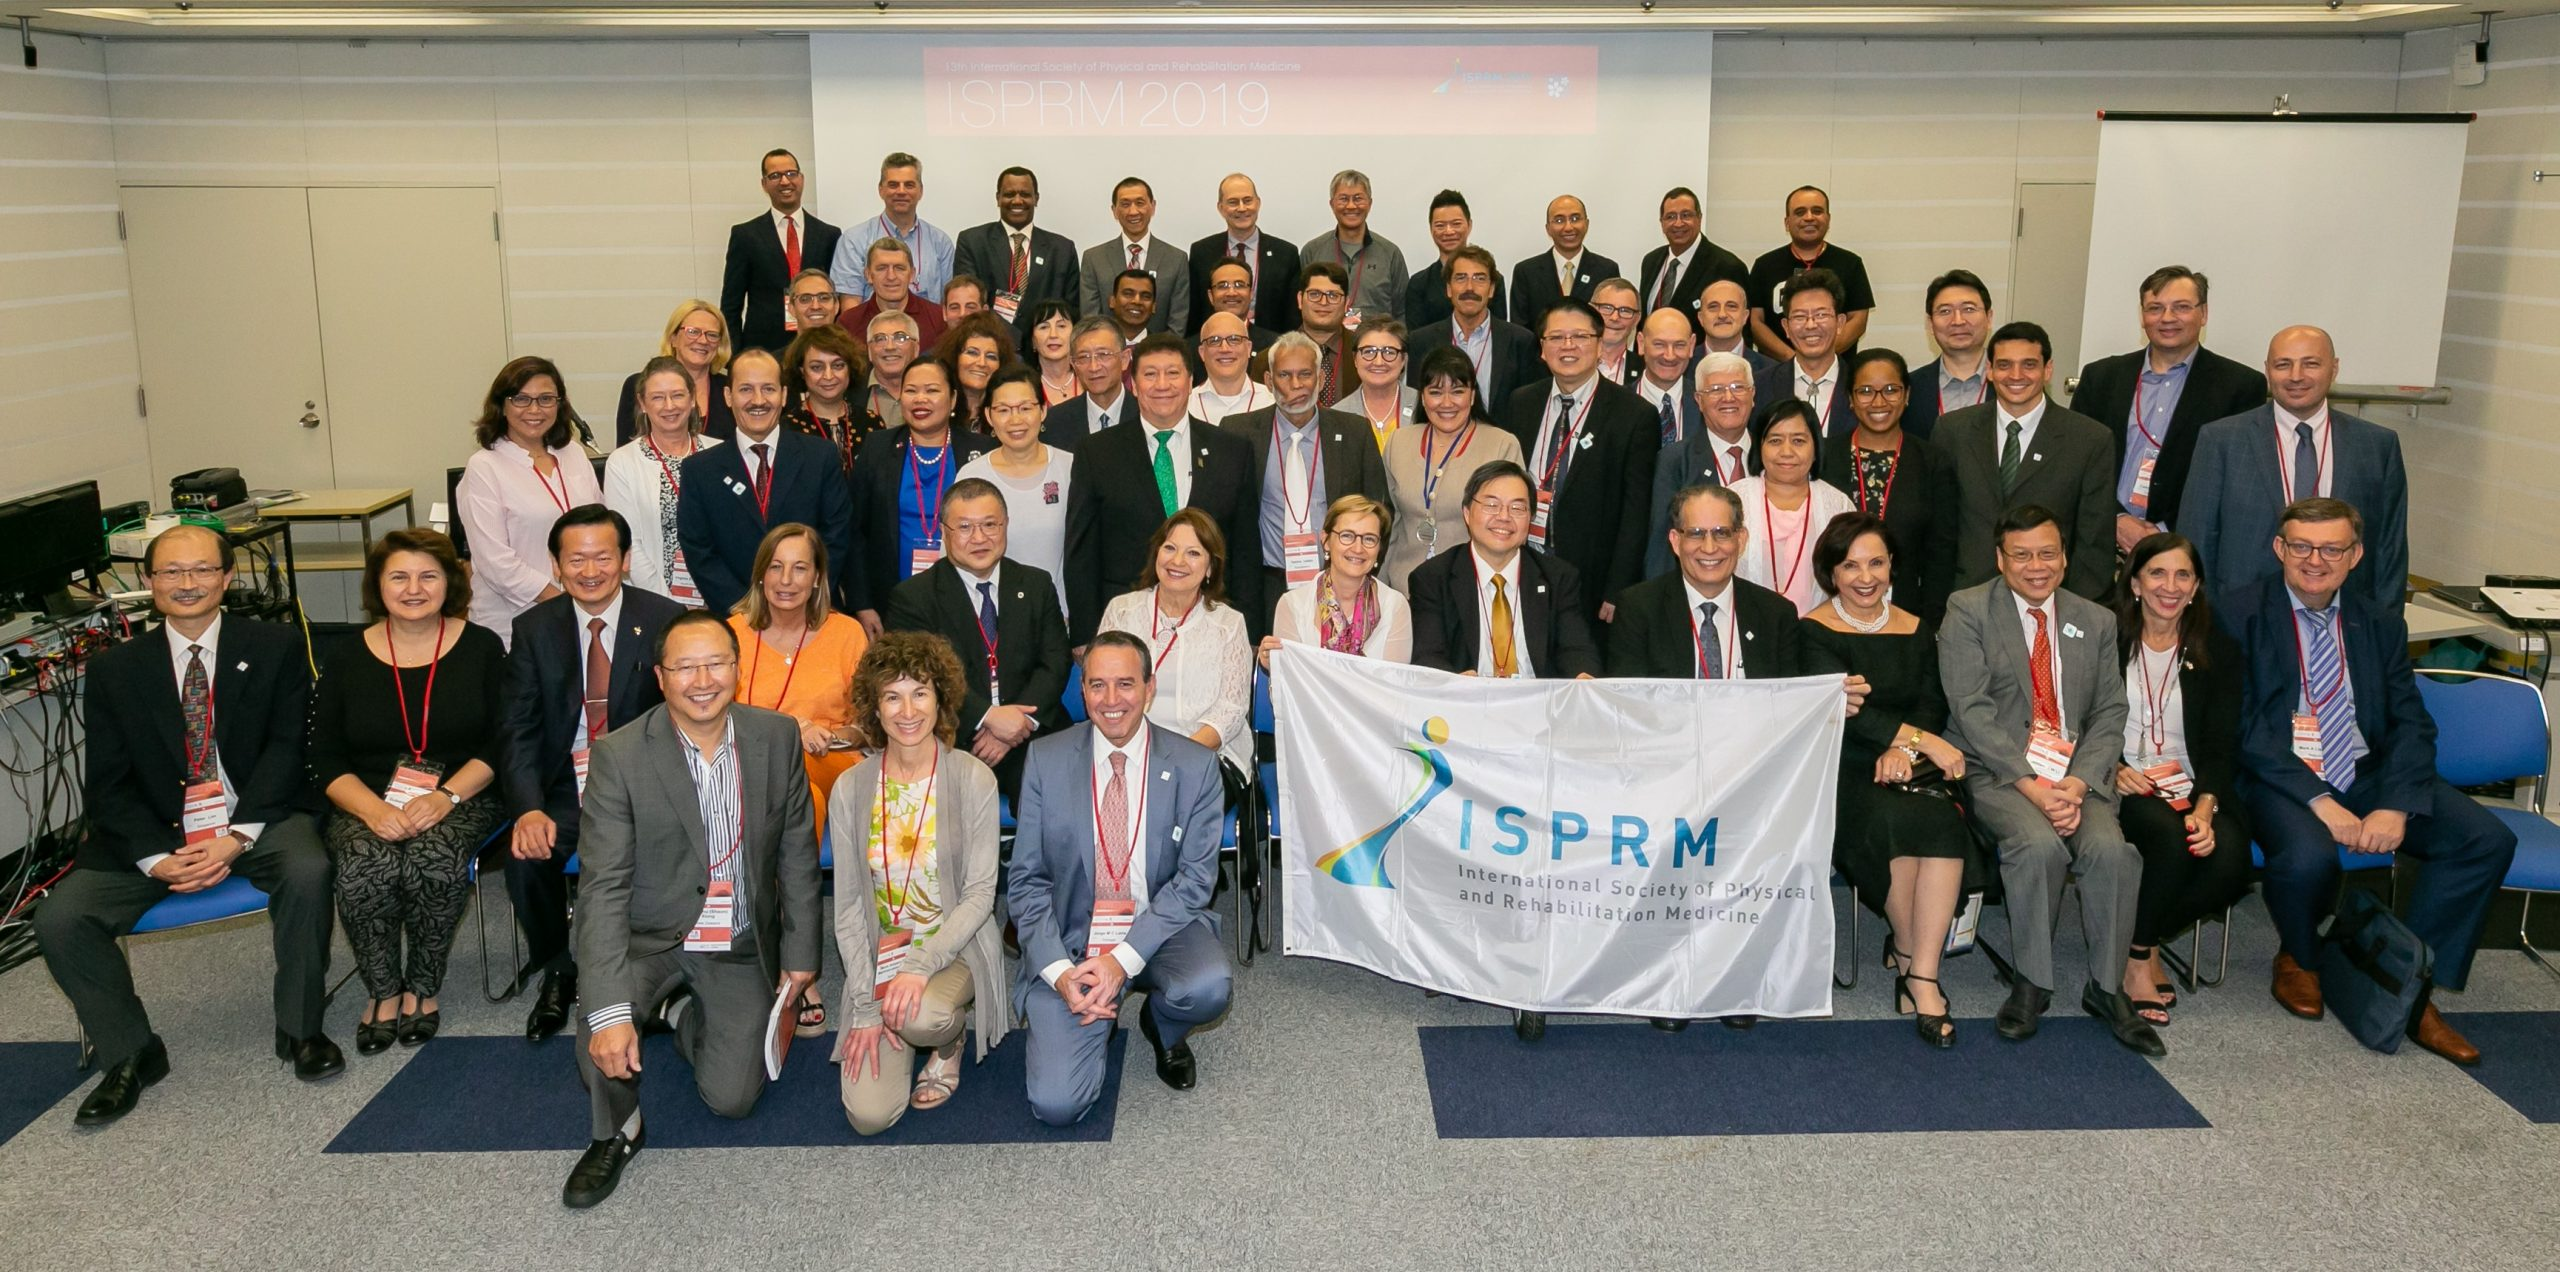 ISPRM Assembly of Delegates, Kobe 2019